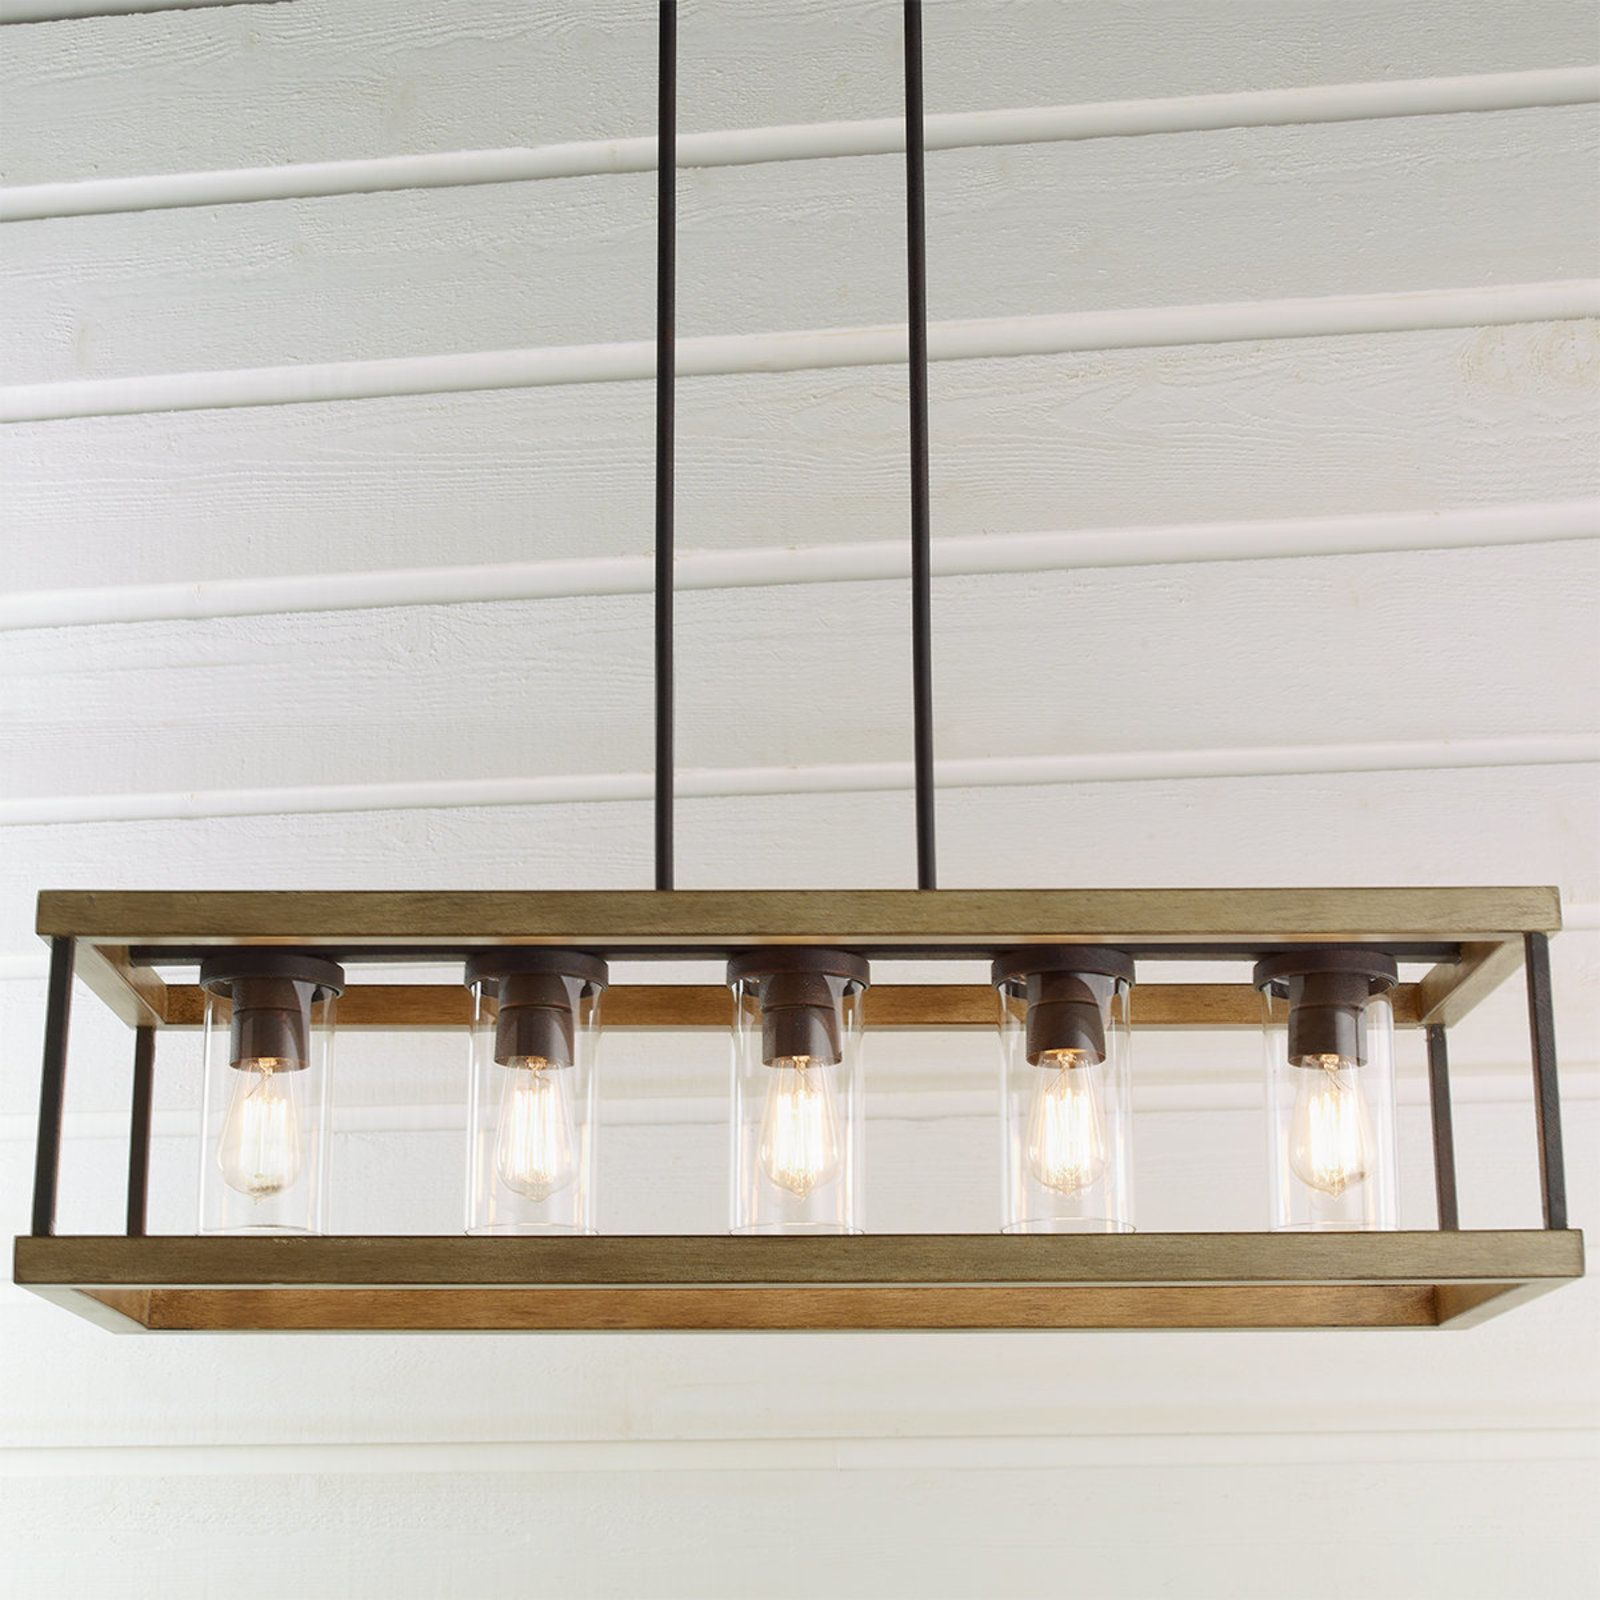 Indoor Outdoor Rectangular Rustic Chandelier Rustic Chandelier Rectangular Chandelier Outdoor Chandelier